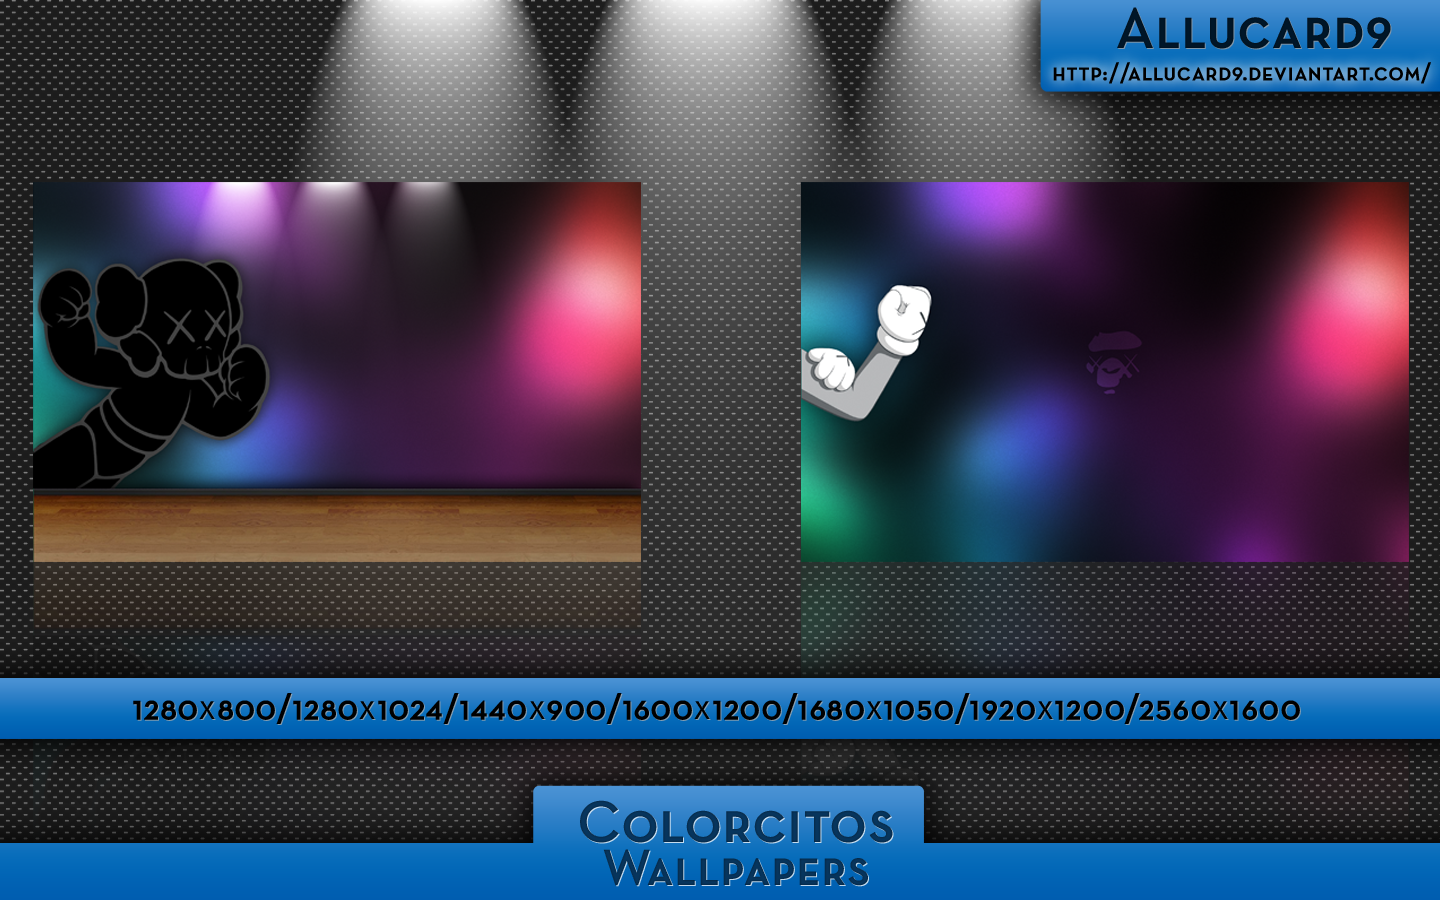 Colorcitos... Wallpapers by Allucard9